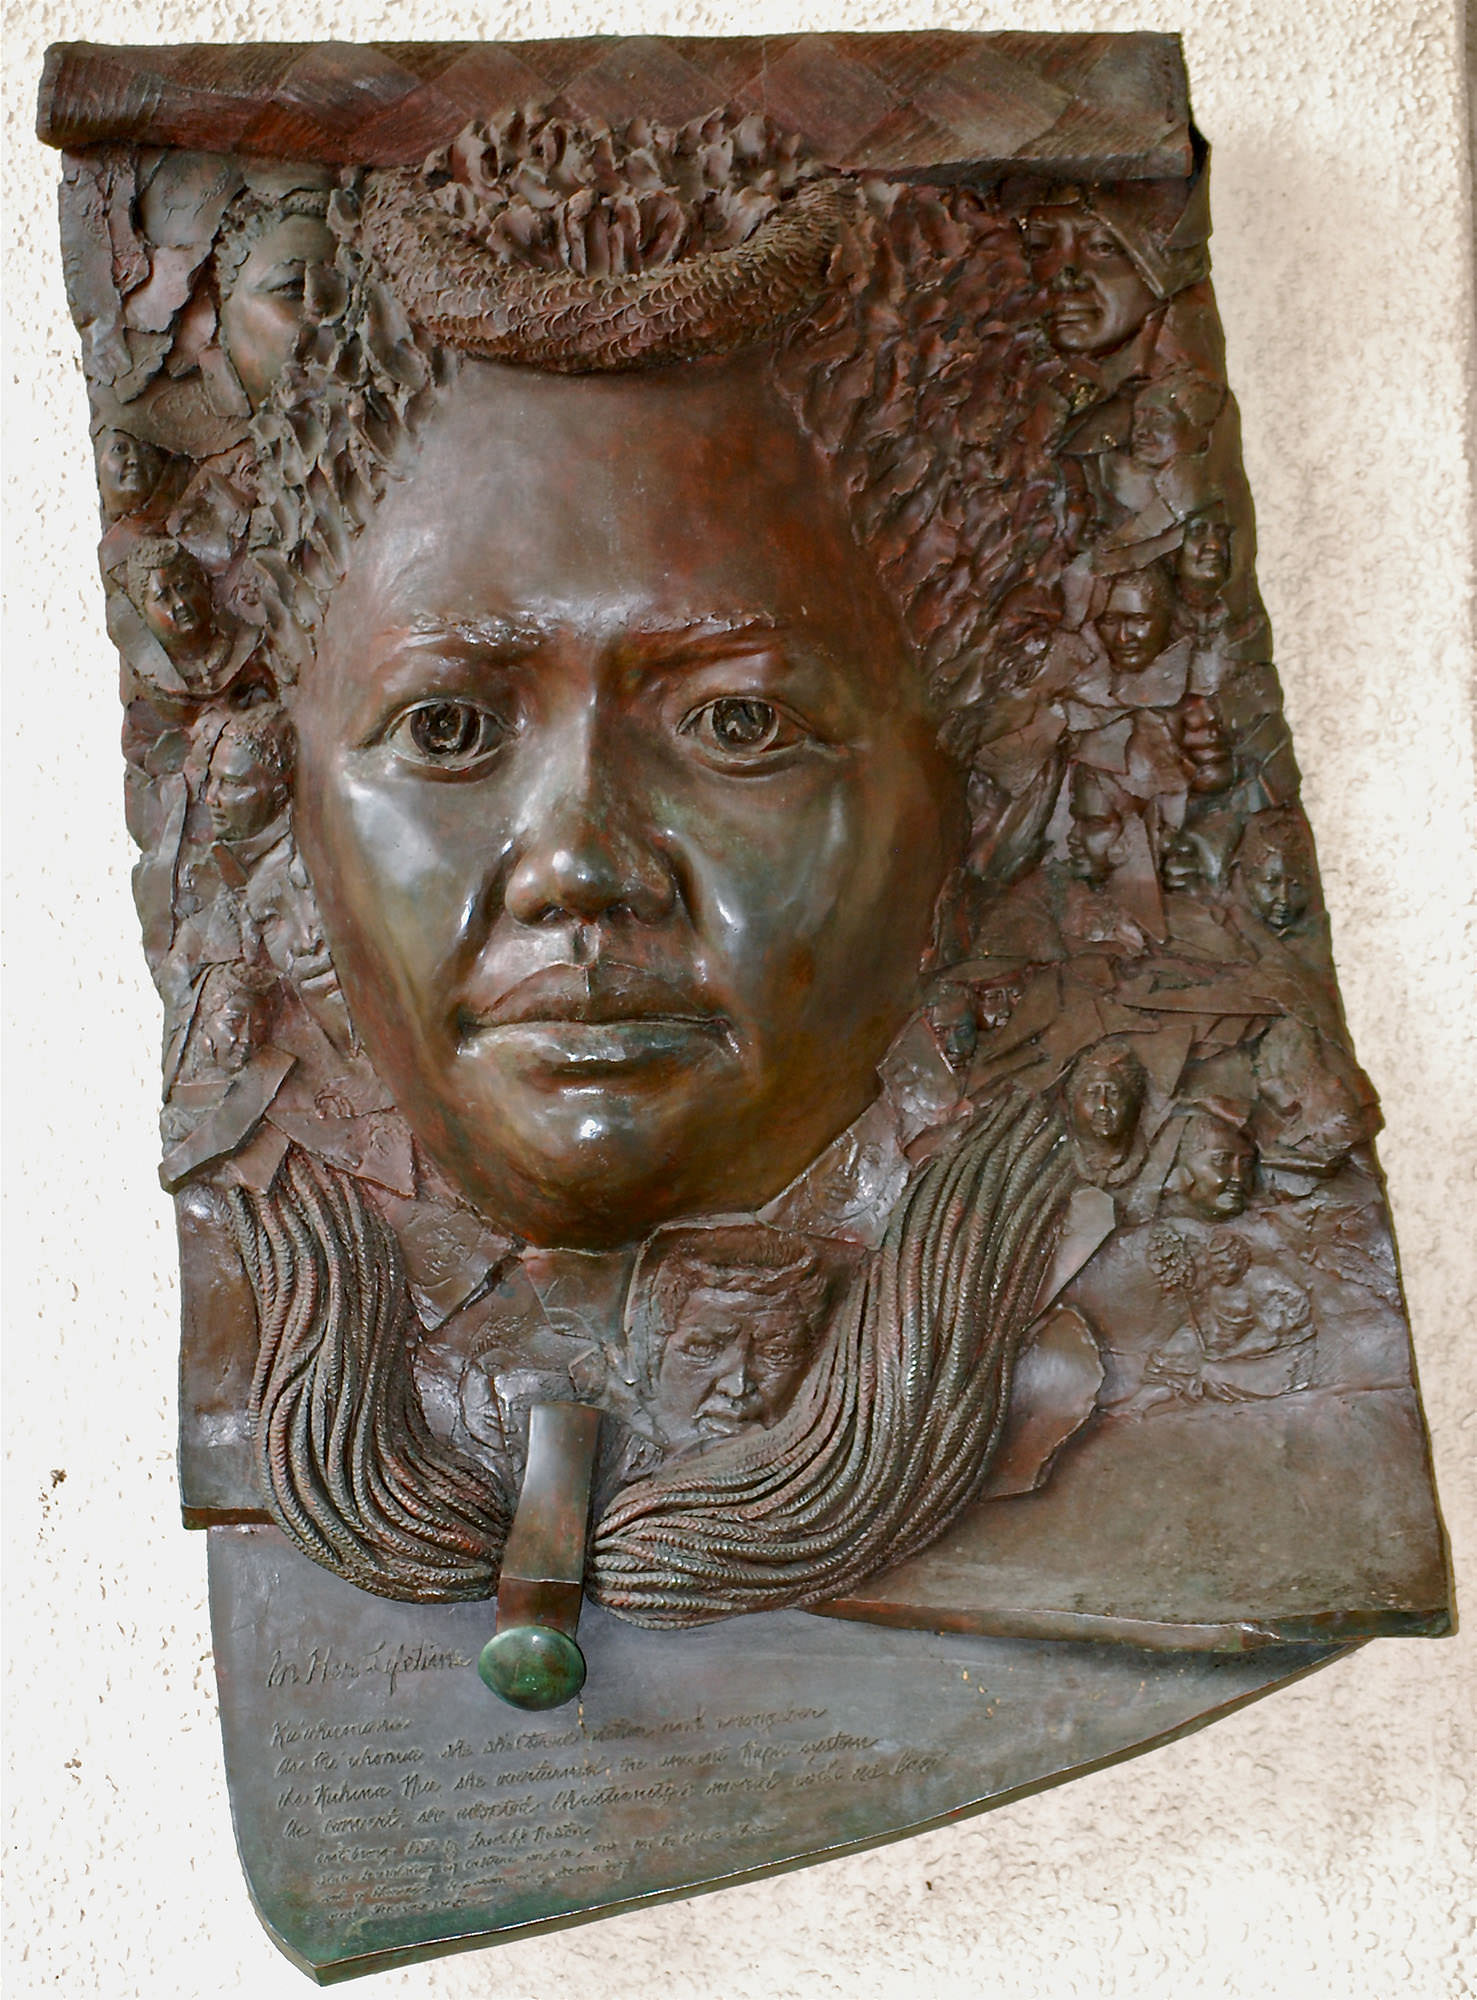 Fig. 5 Cast bronze relief wall sculpture of Queen Kaʻahumanu at main entry of Hawaiʻi First Circuit Courthouse, In Her Lifetime, 1993, Fred Roster, sculptor, July 2014. Photo: ©Sally Promey